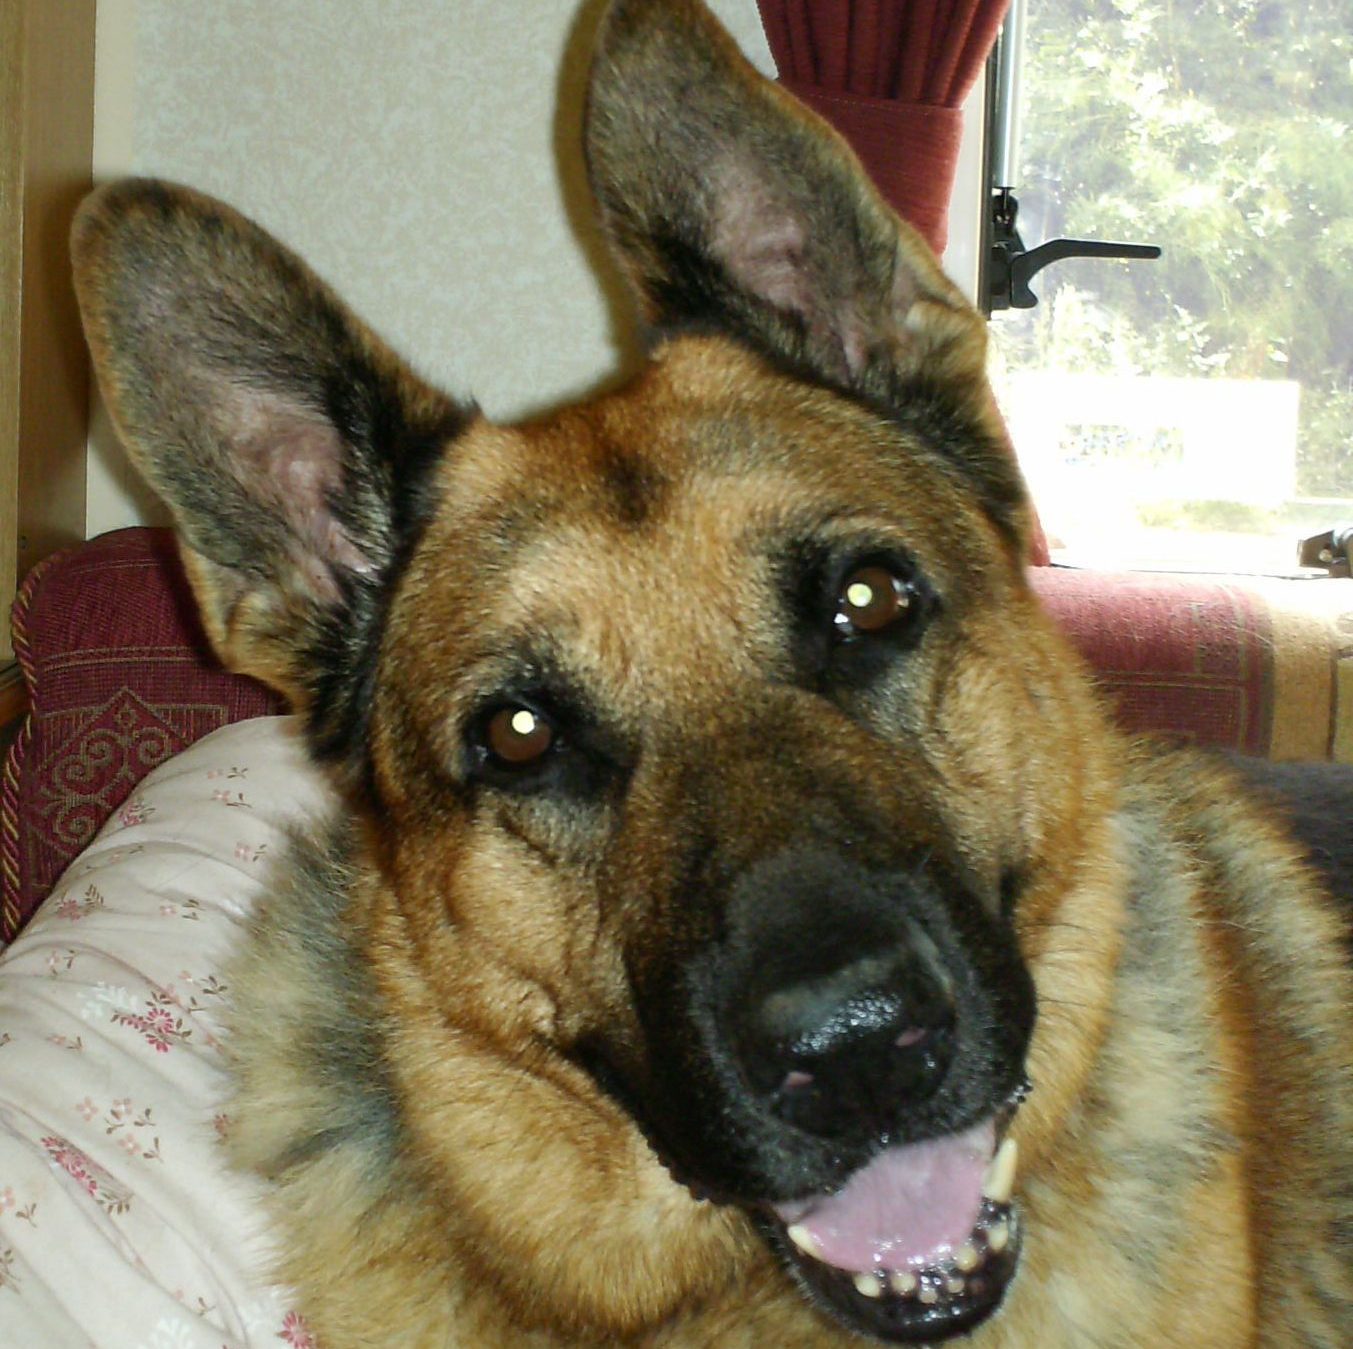 Buddy the German shepherd dog